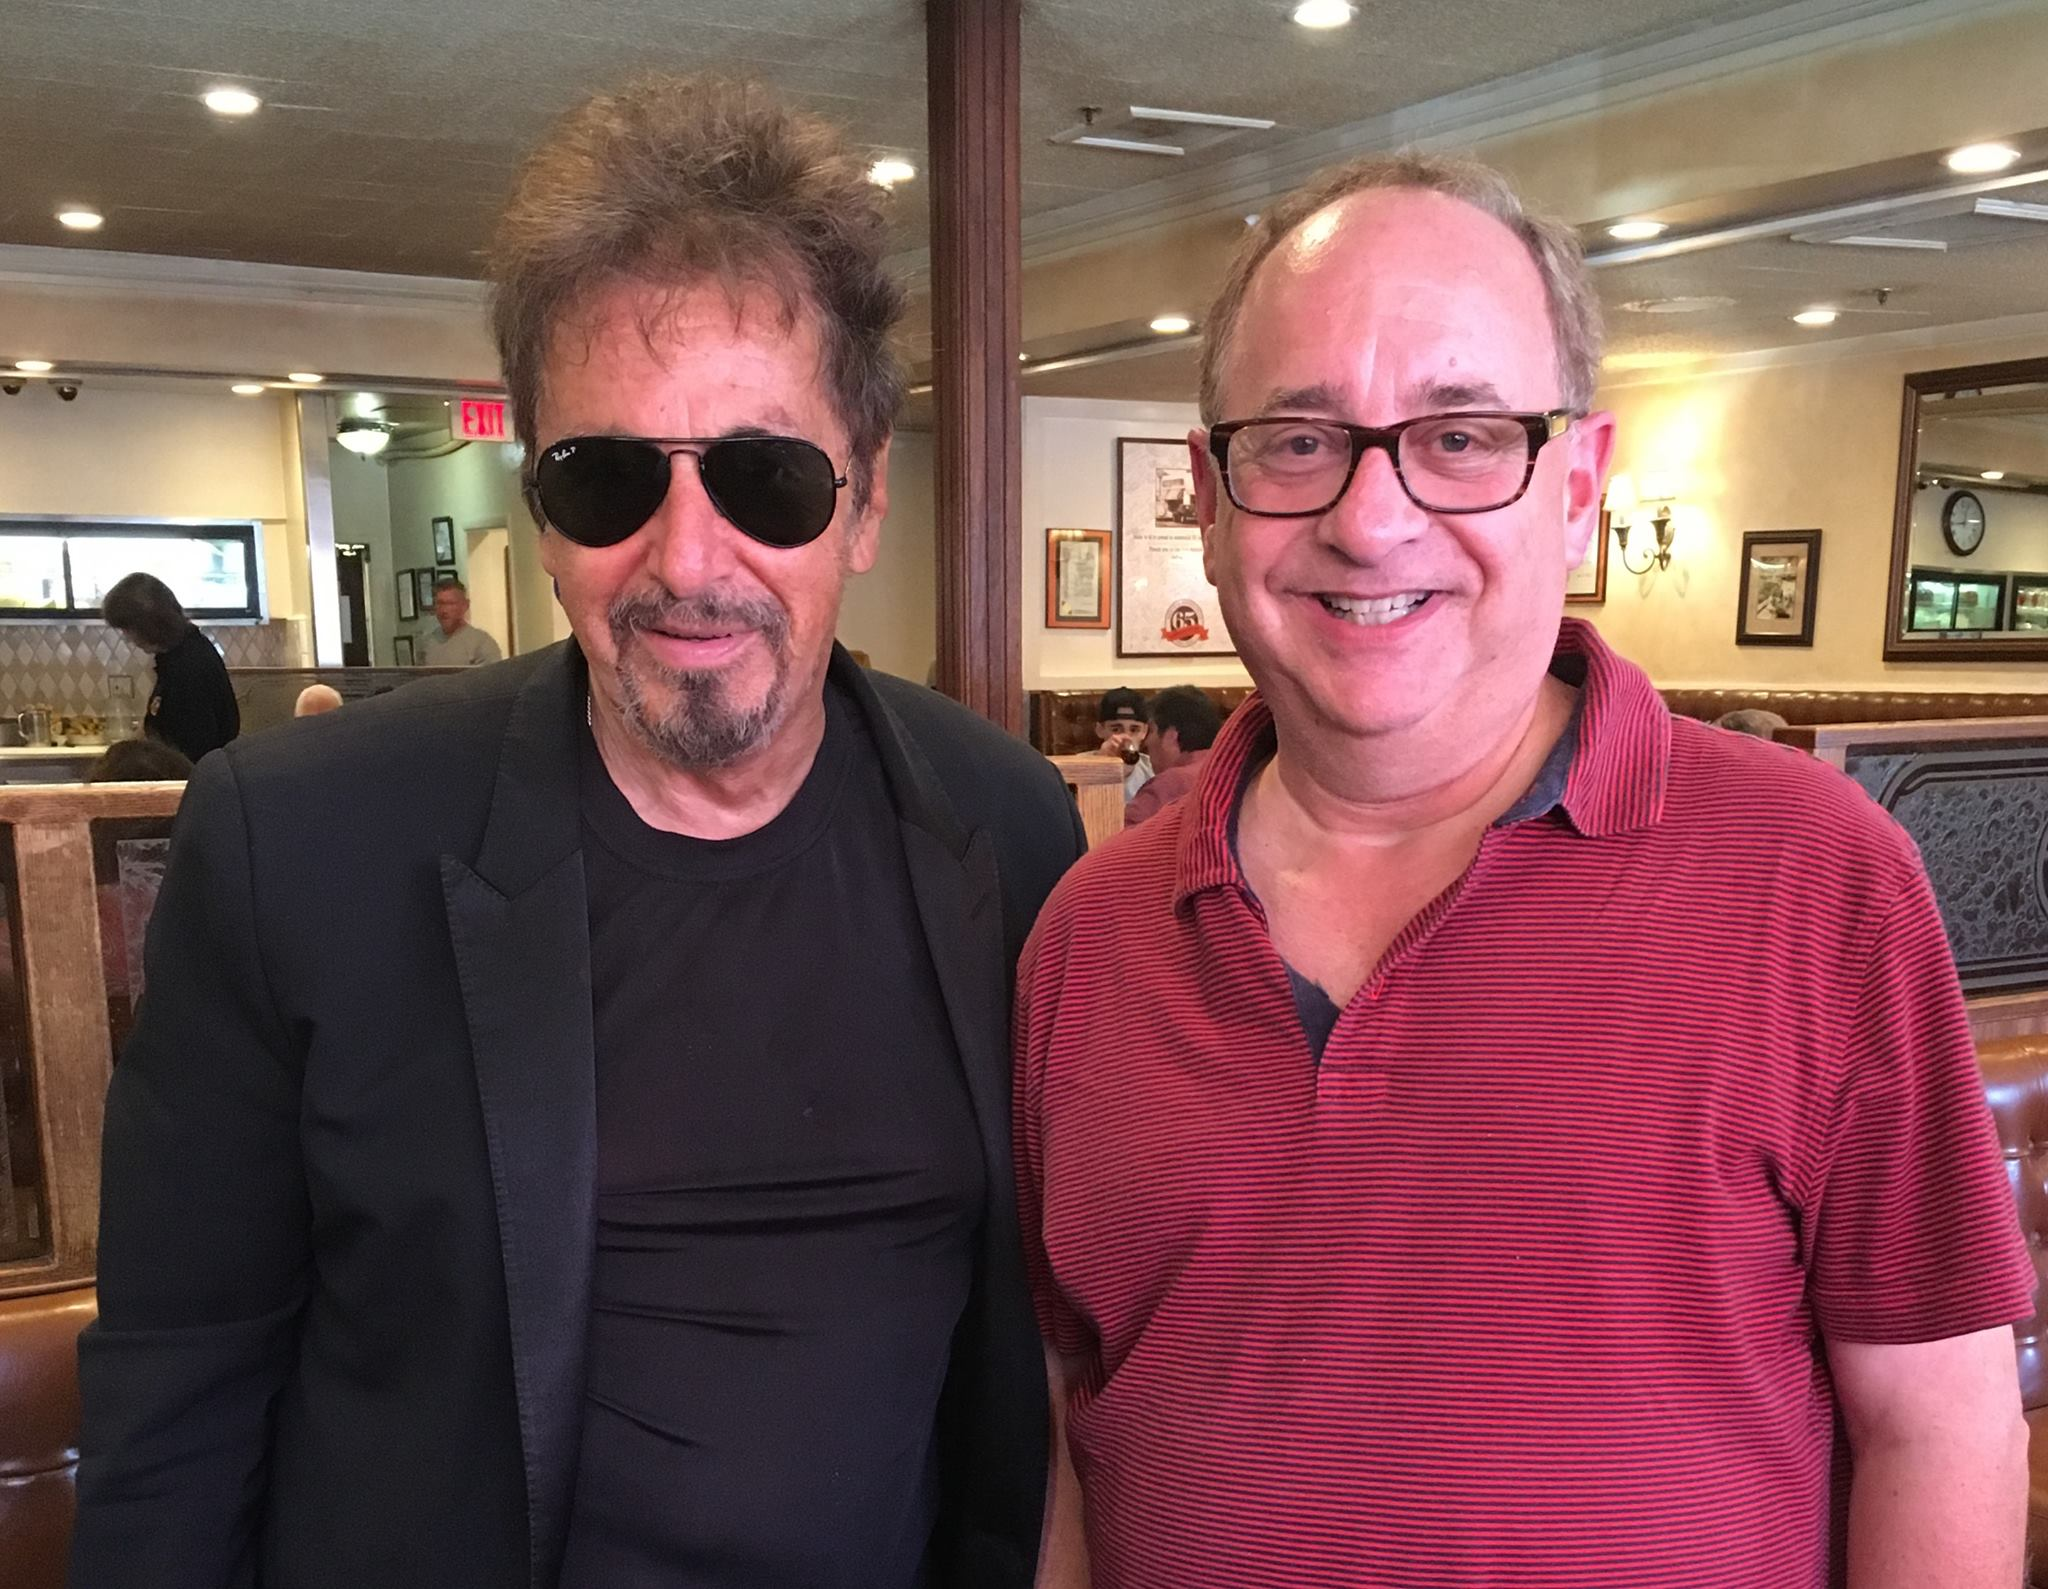 Chuck Field with Al Pacino